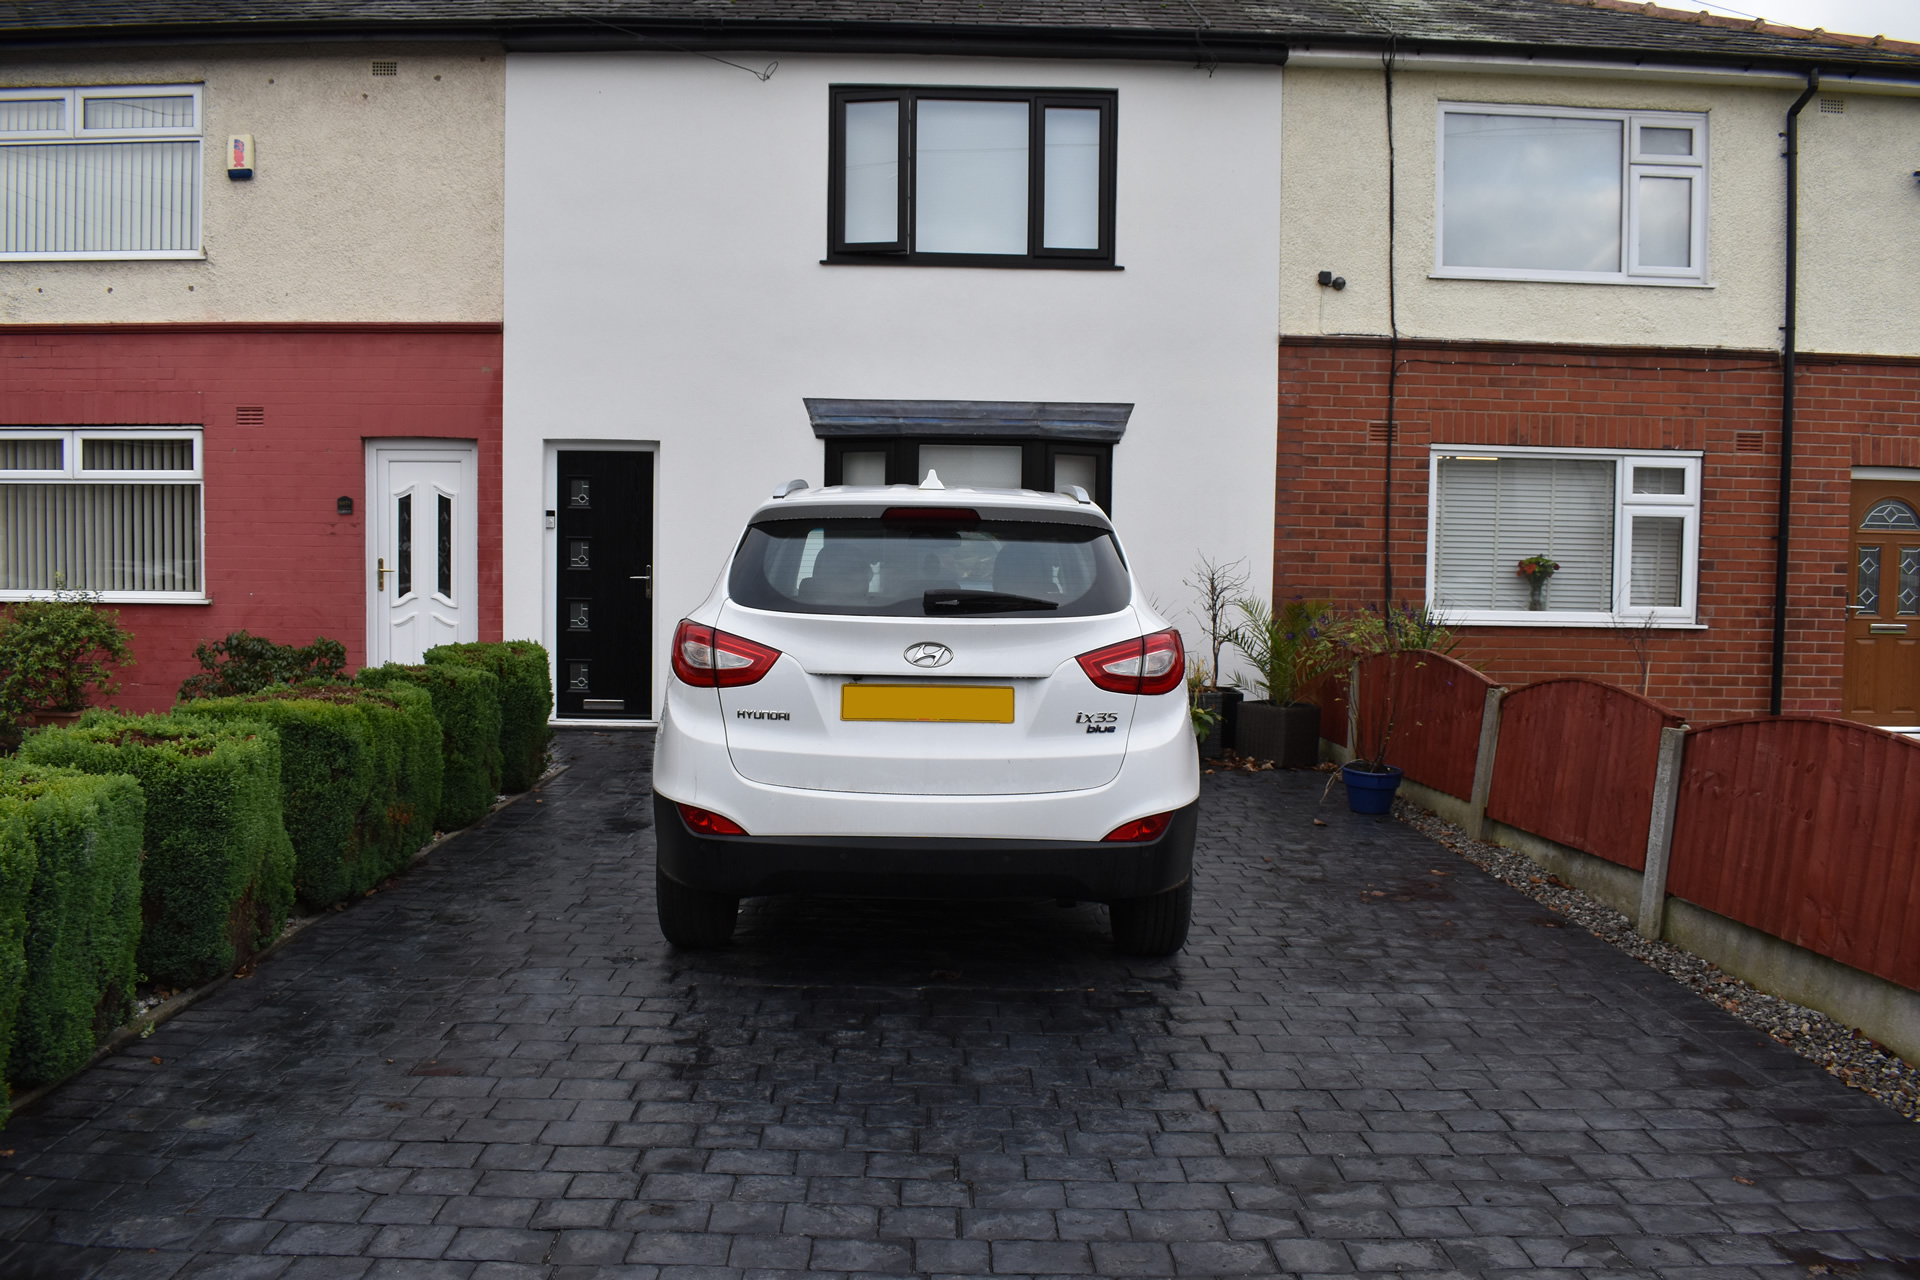 New driveway in Bolton, Greater Manchester